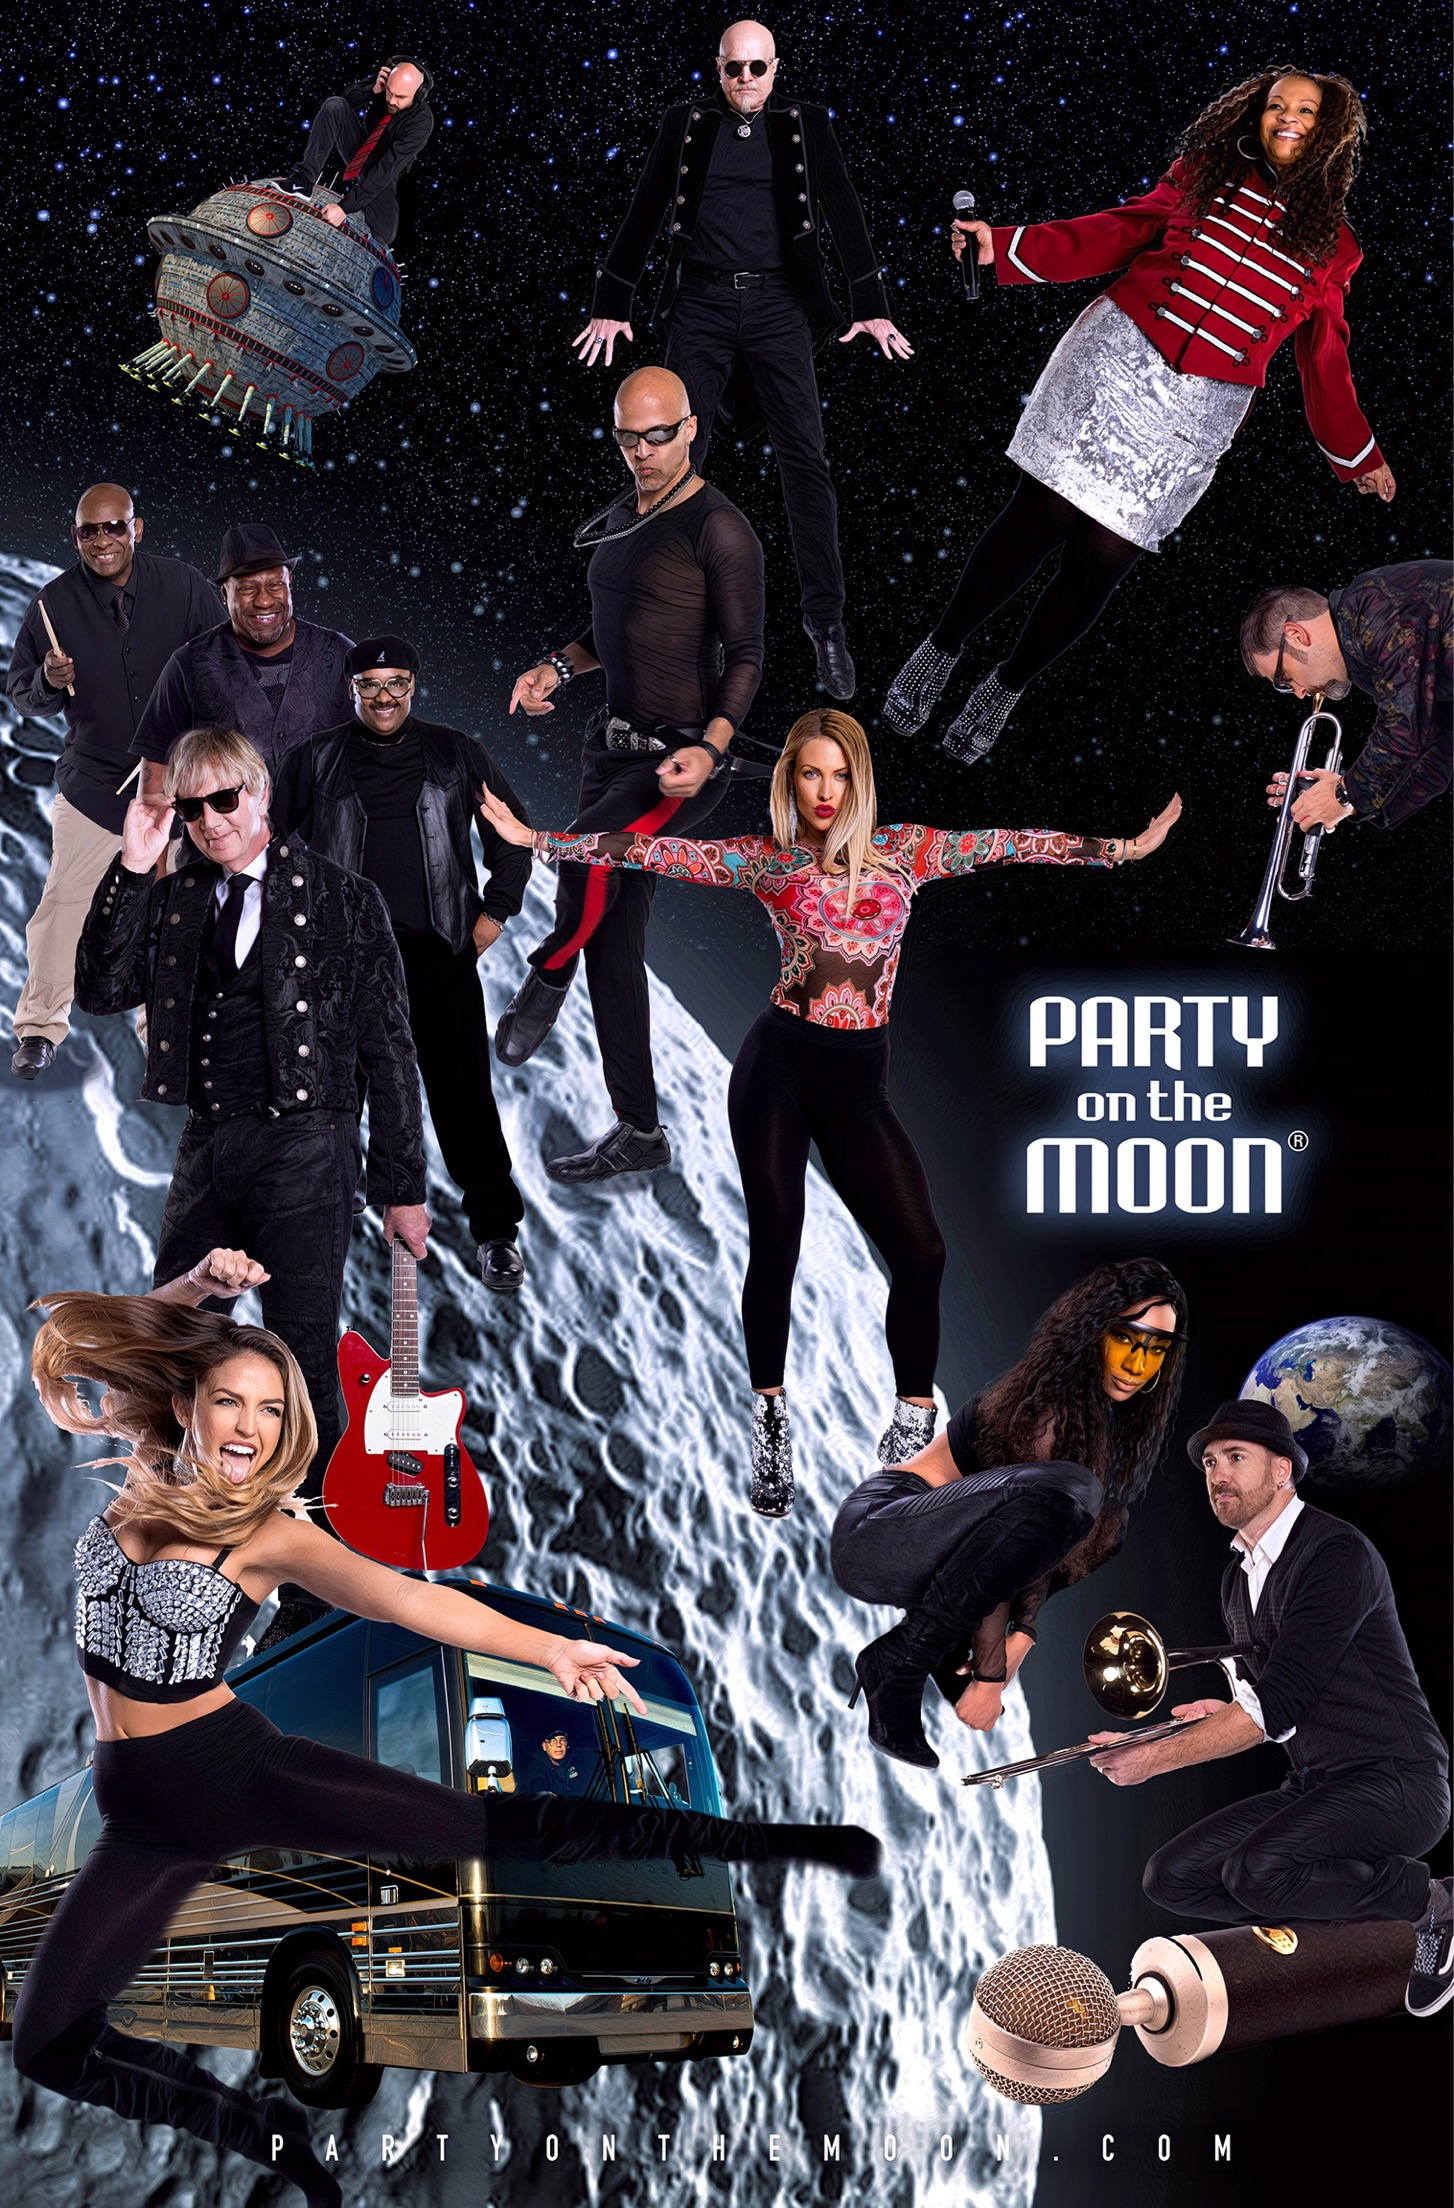 PartyOntheMoon-Poster